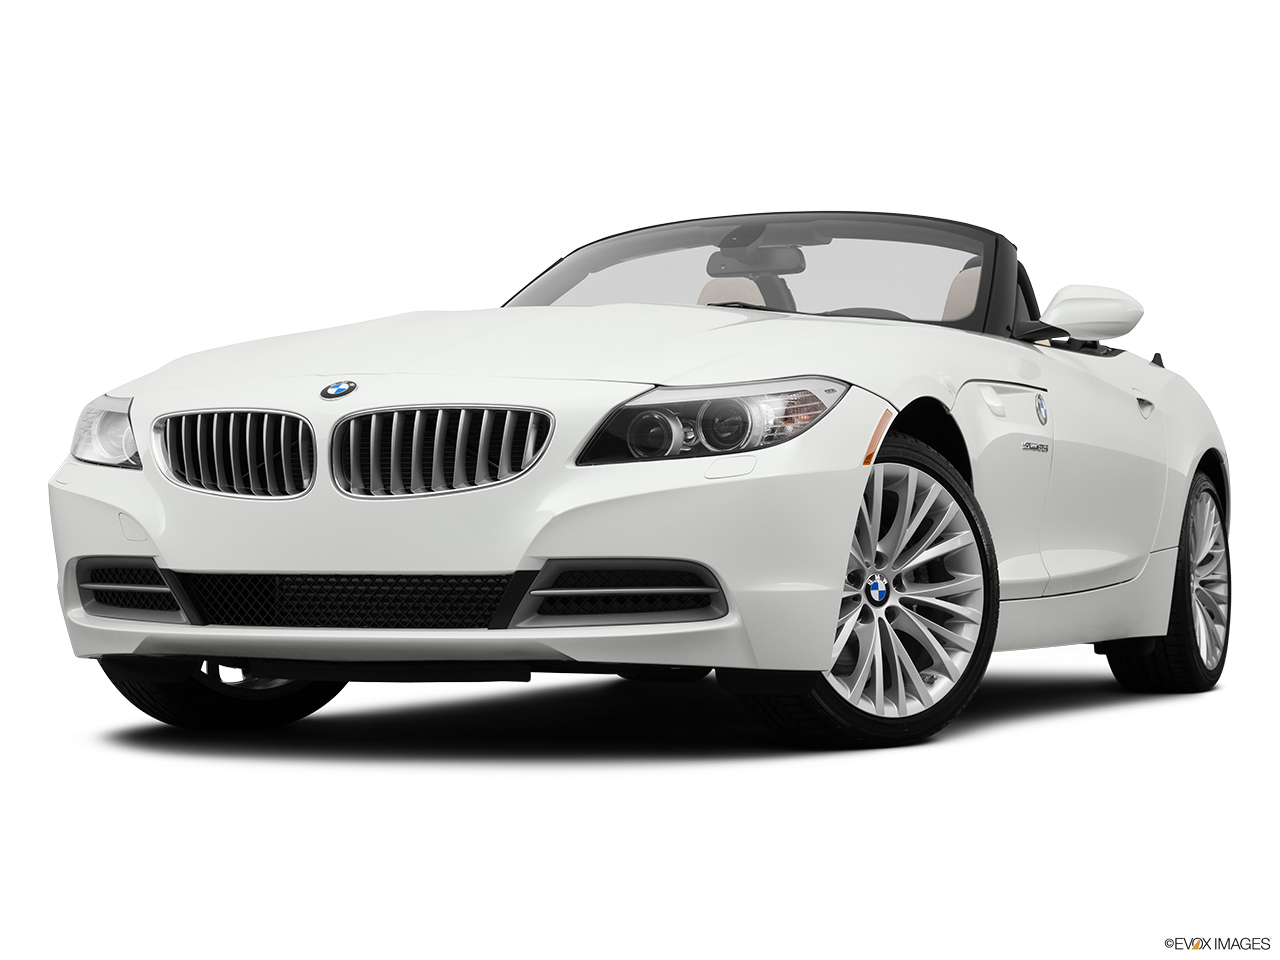 2014 bmw z4 roadster 35i front angle view low wide perspective